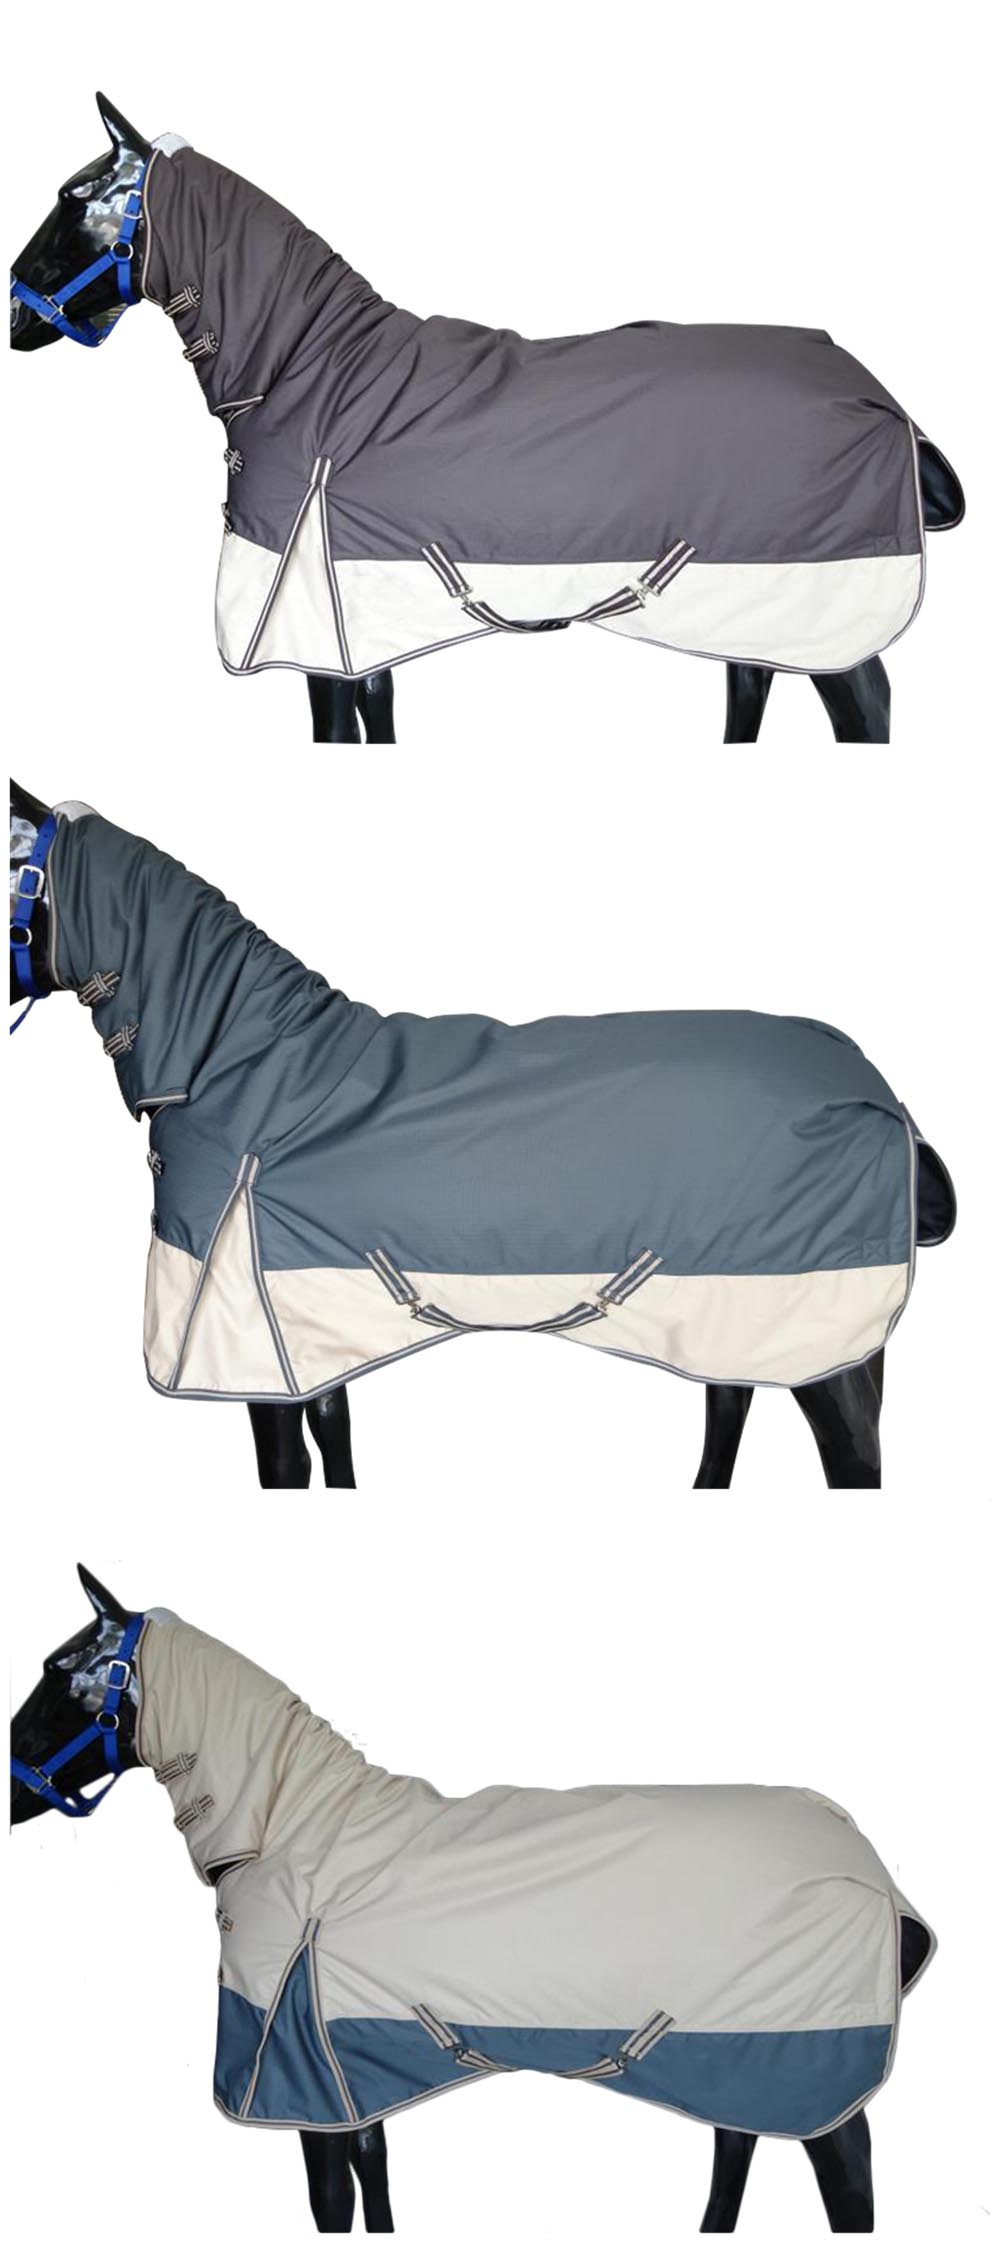 600d polyester horse rug